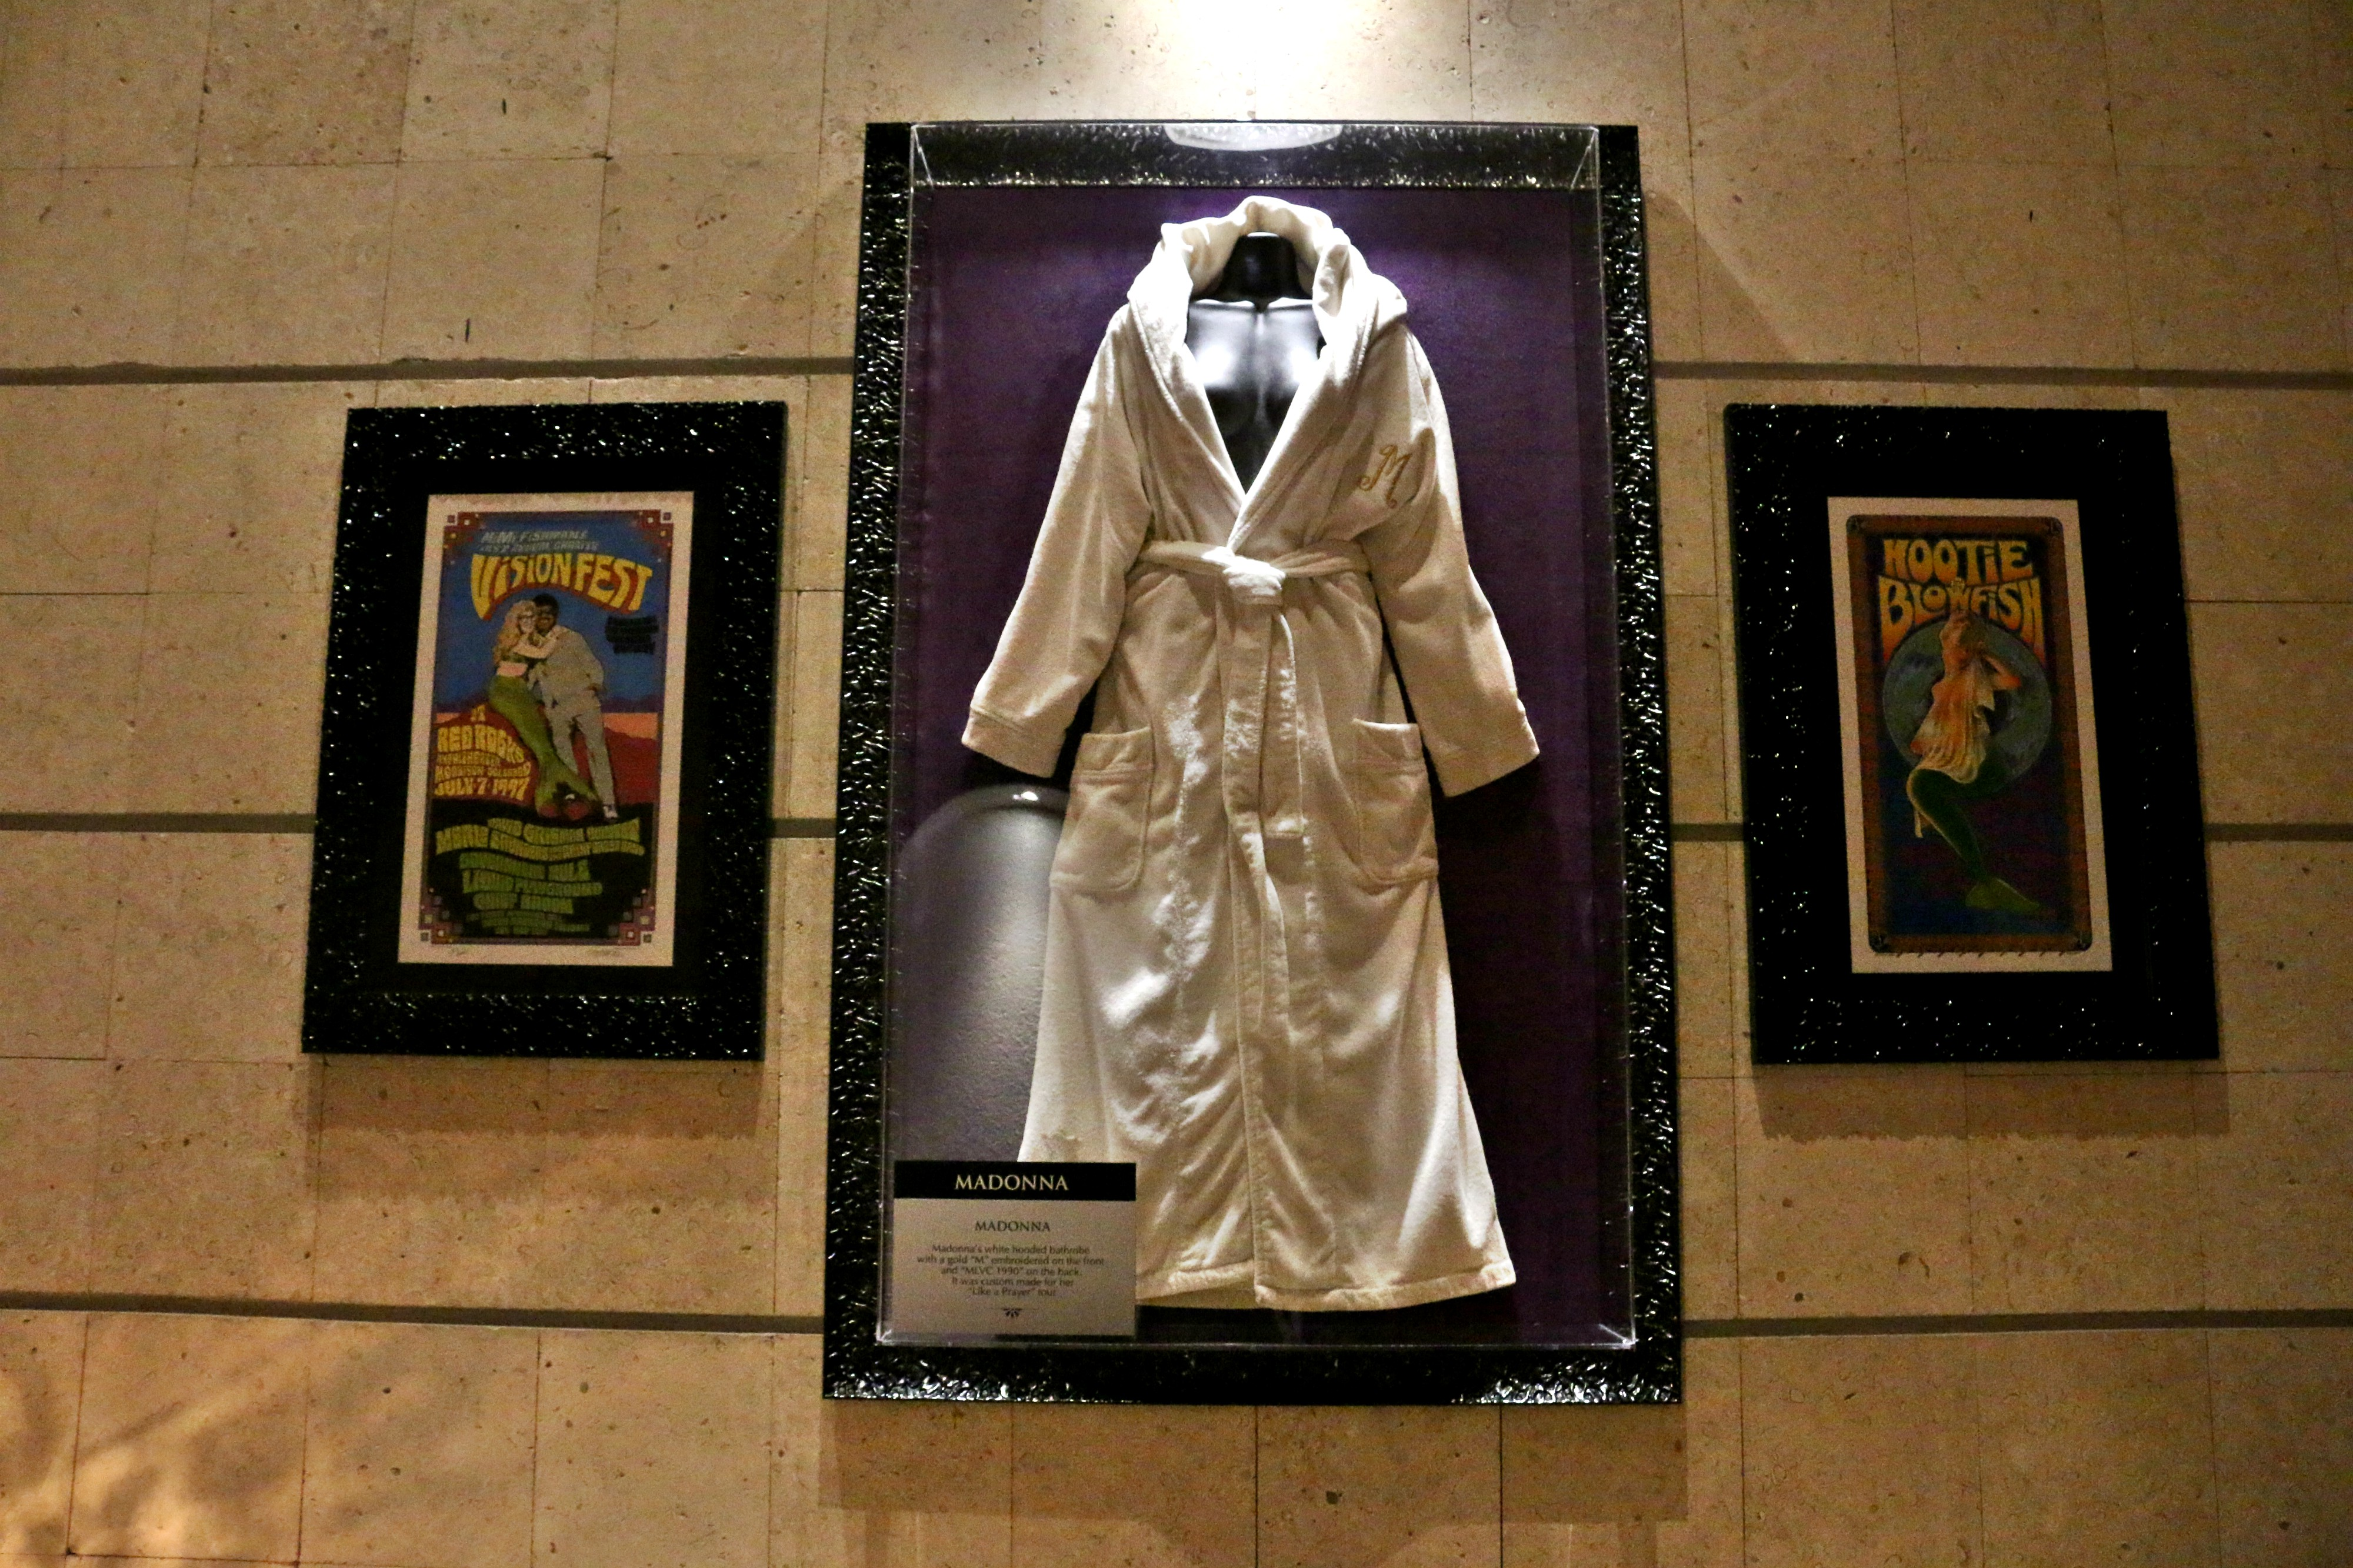 Madonna's custom-made bathrobe that she wore on  her